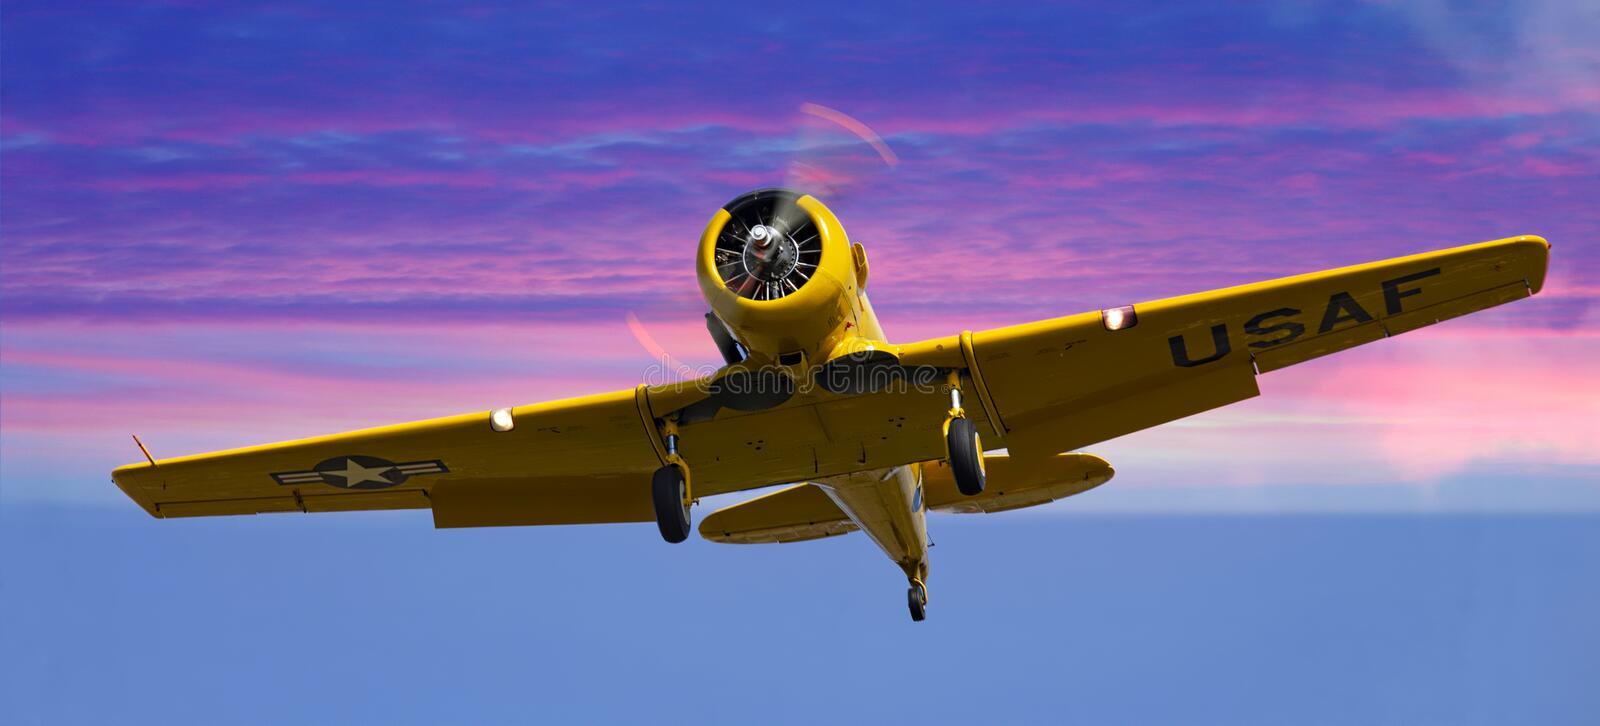 Yellow plane royalty free stock images